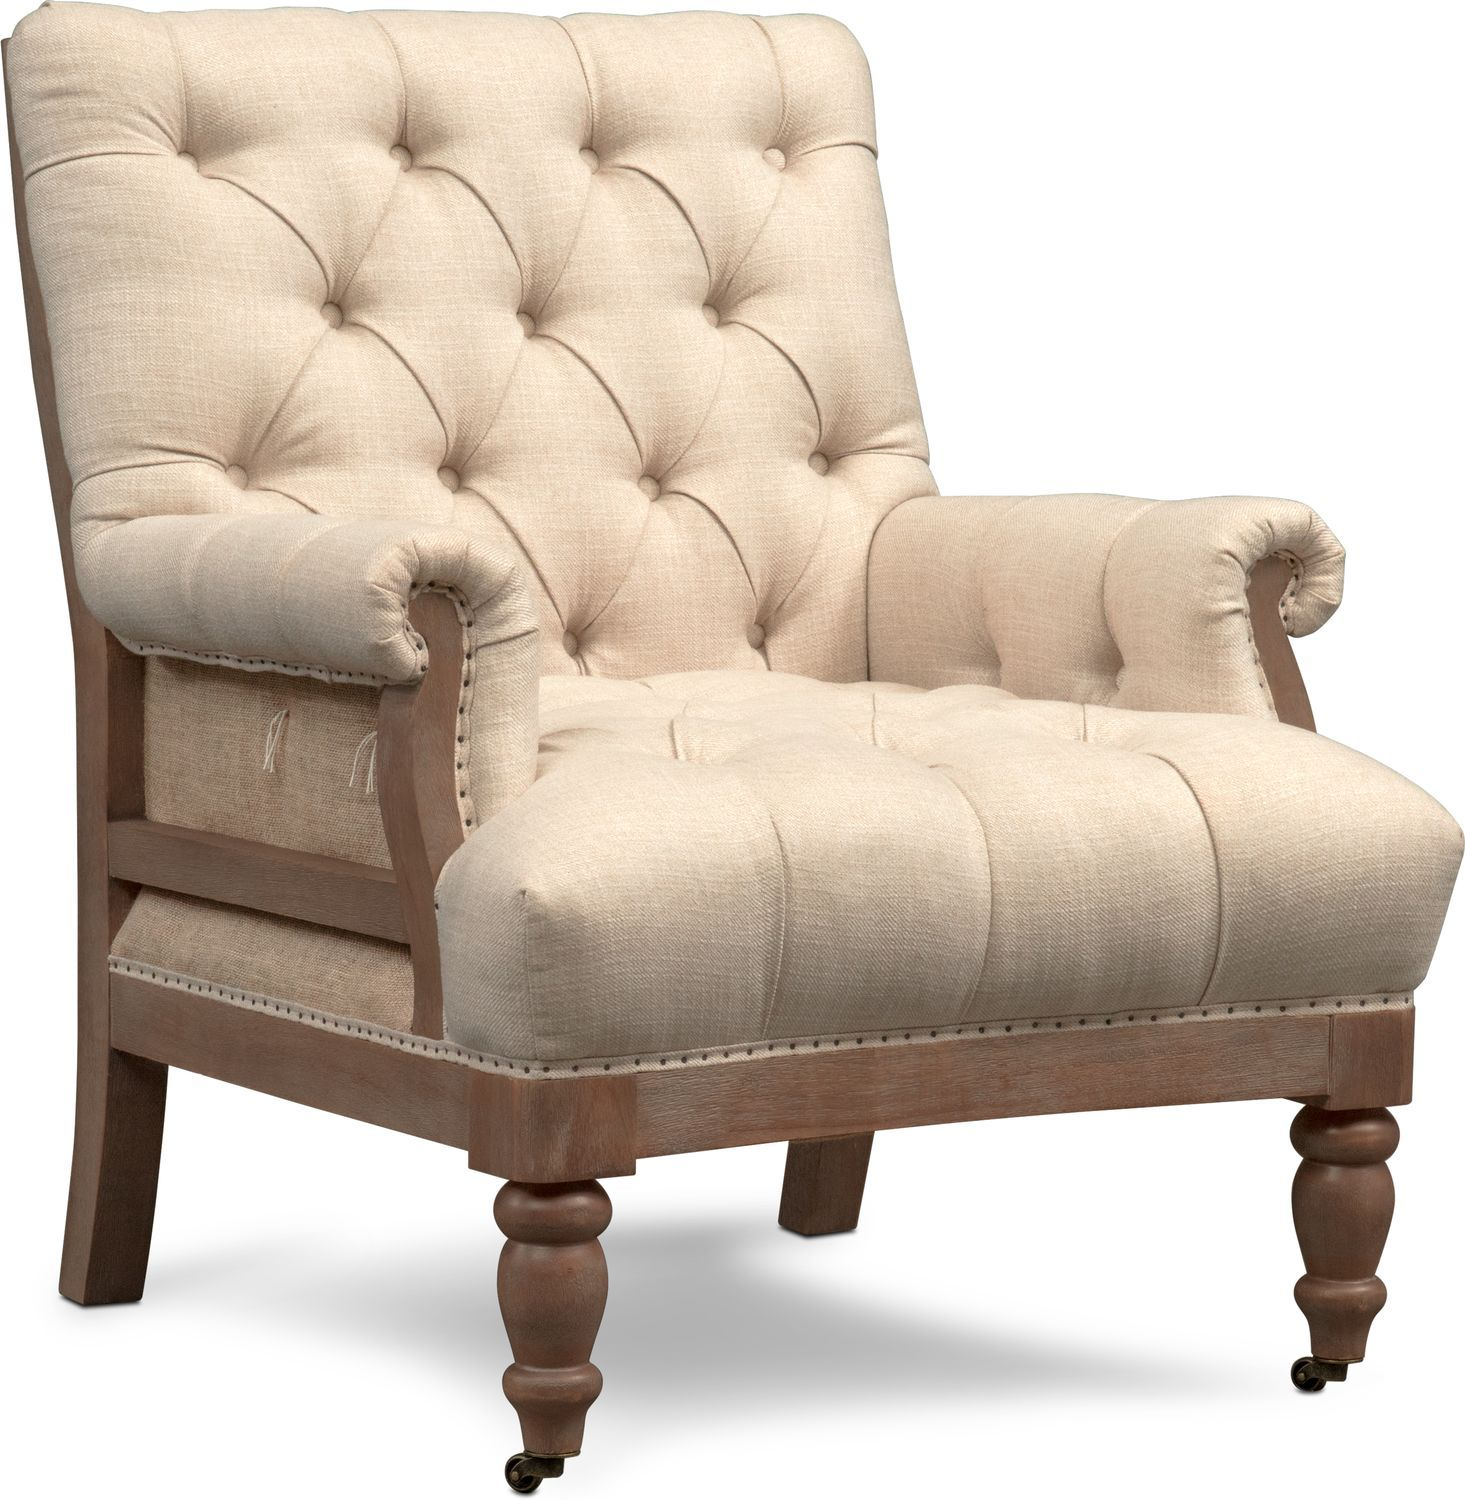 Best Bridget Accent Chair Cream Value City Furniture 400 x 300